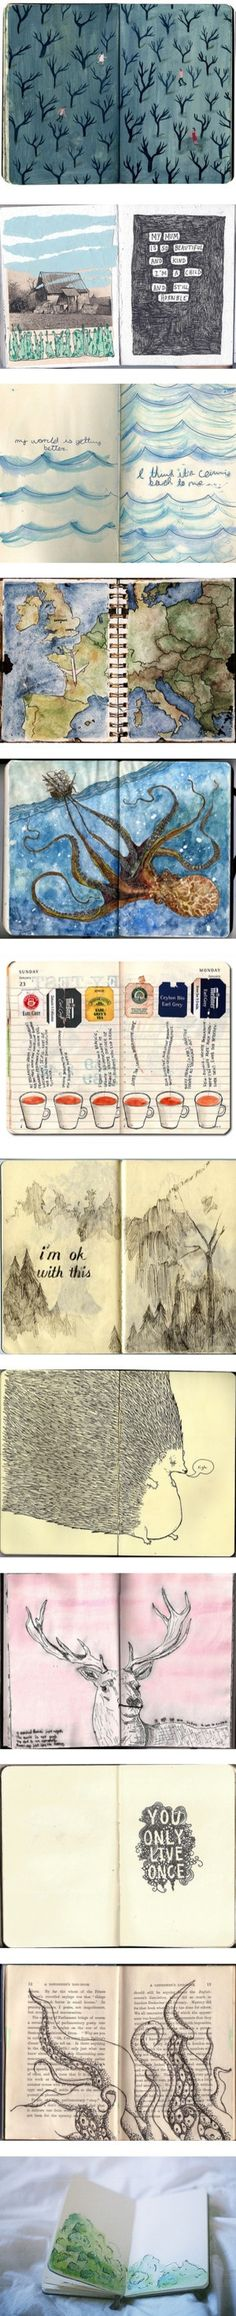 journals / moleskin illustration